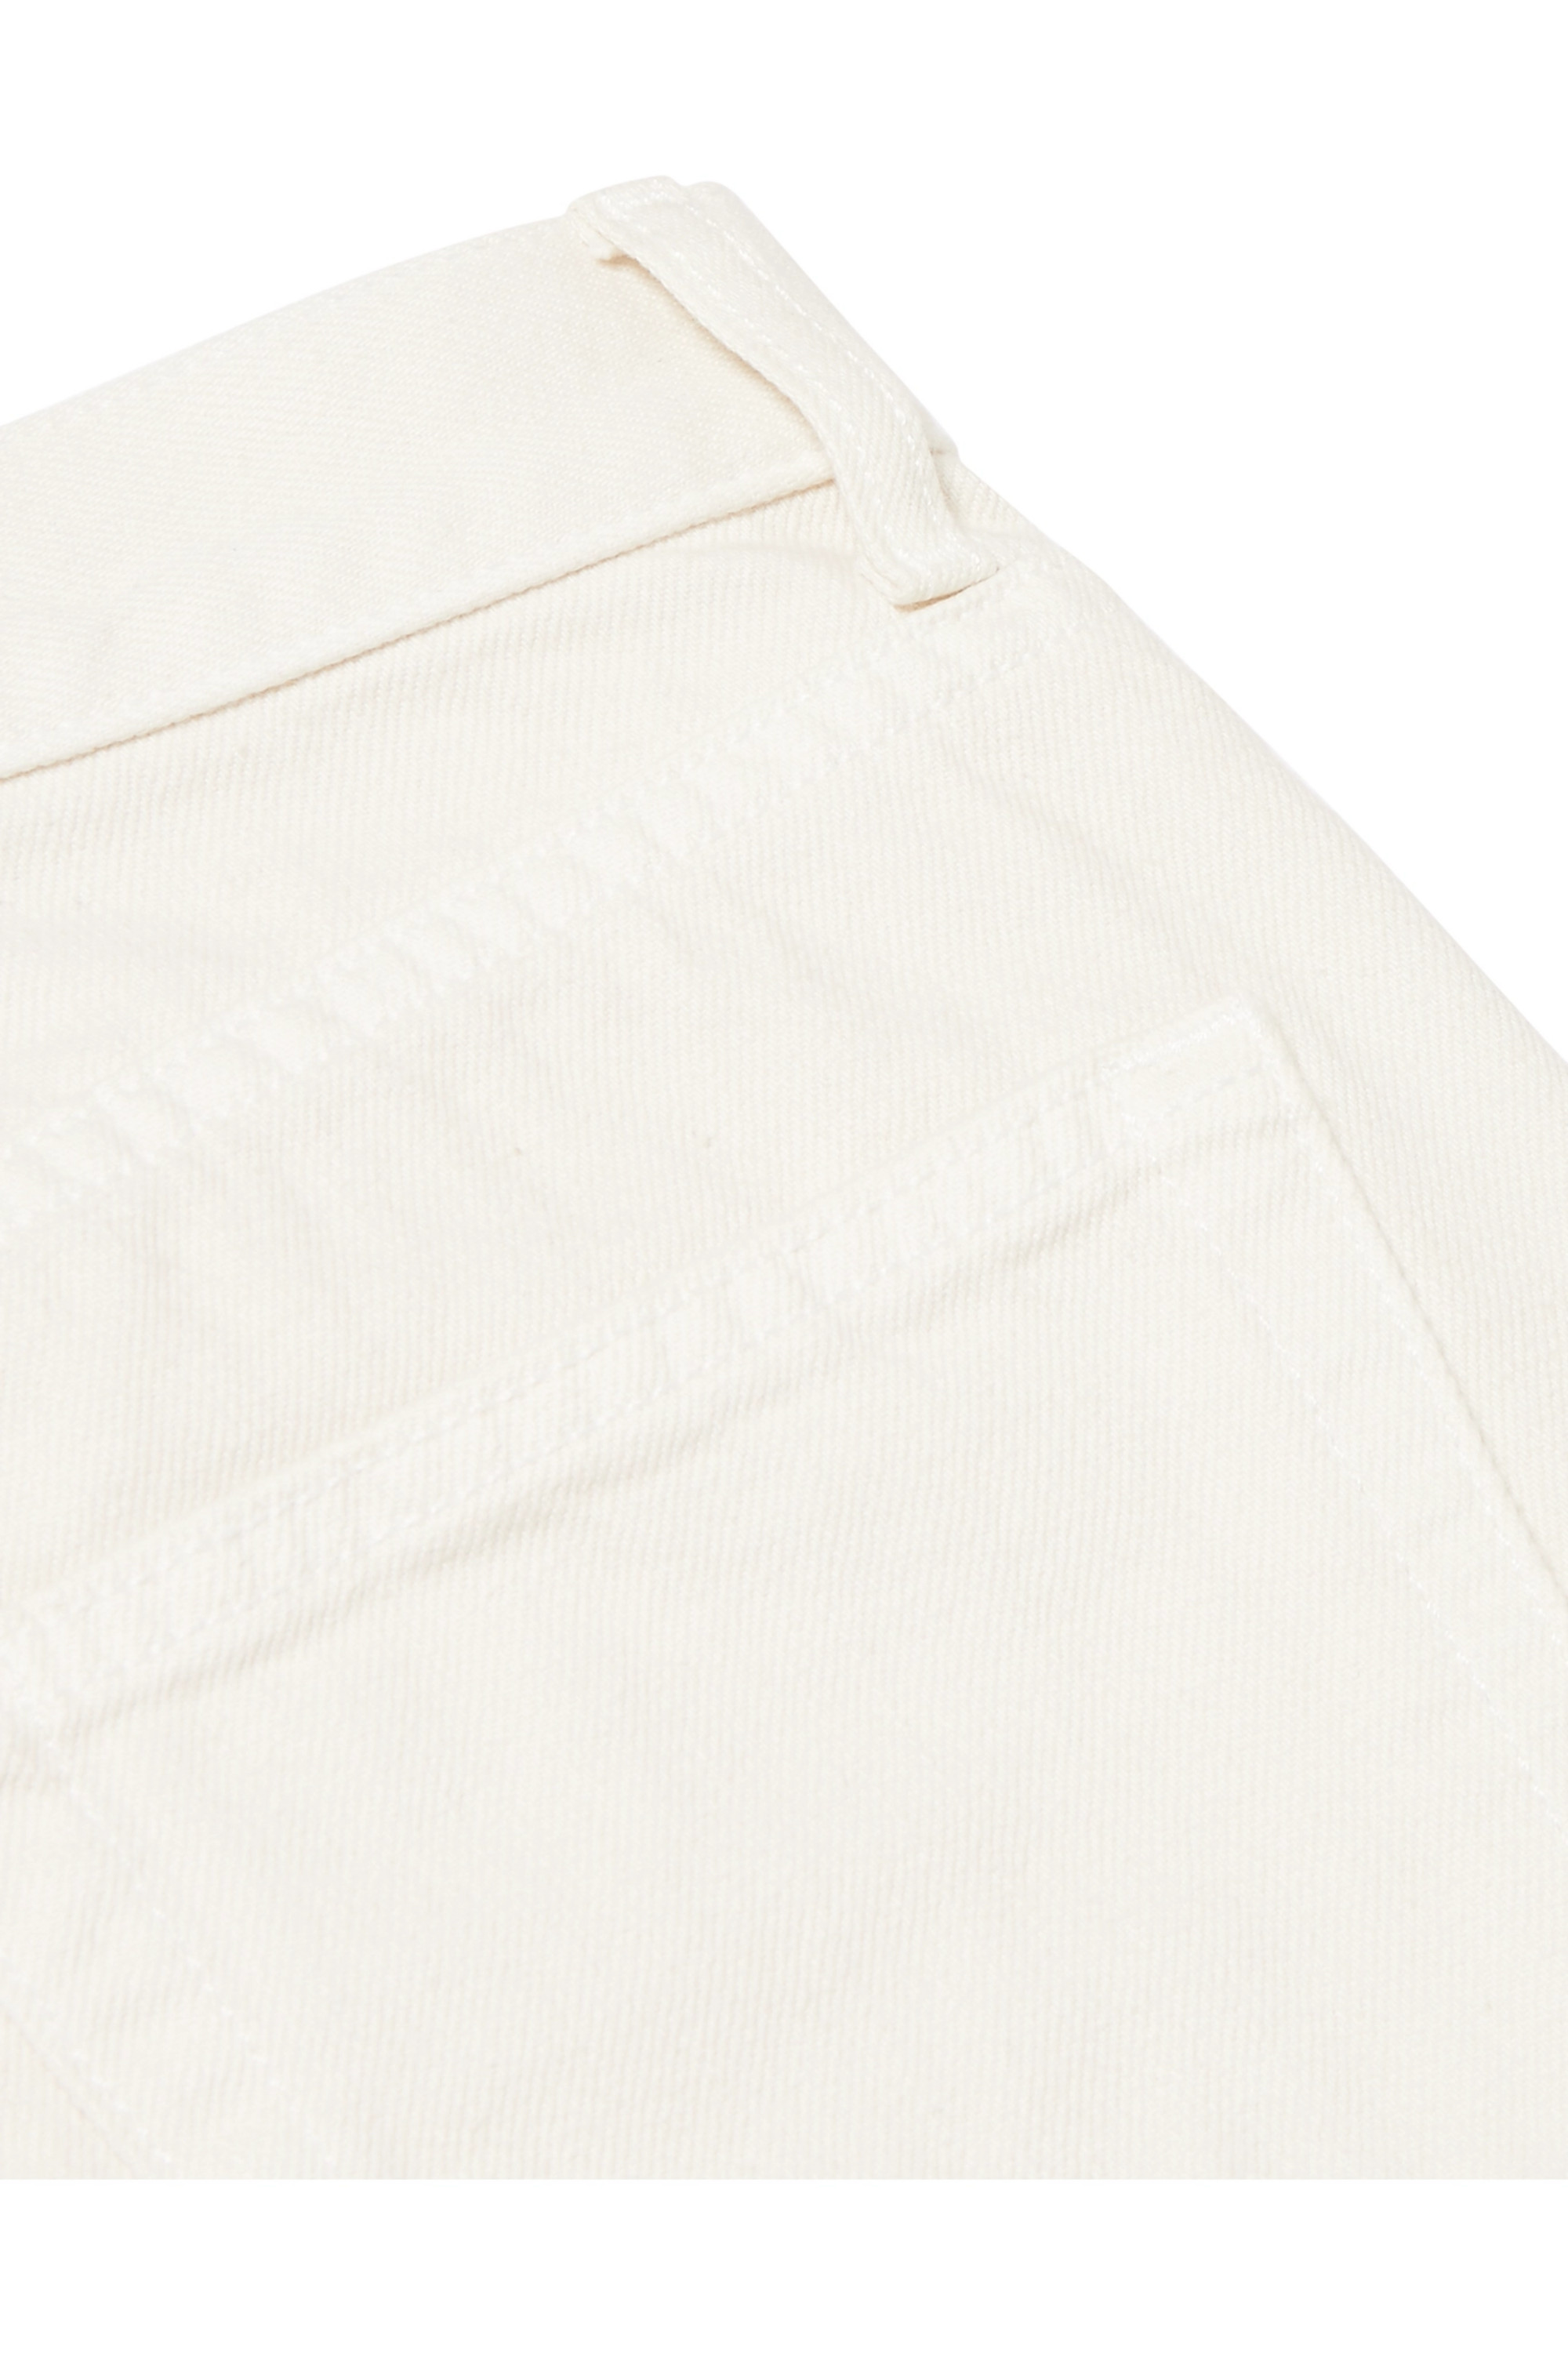 Brock Collection Wright cropped high-rise straight-leg jeans